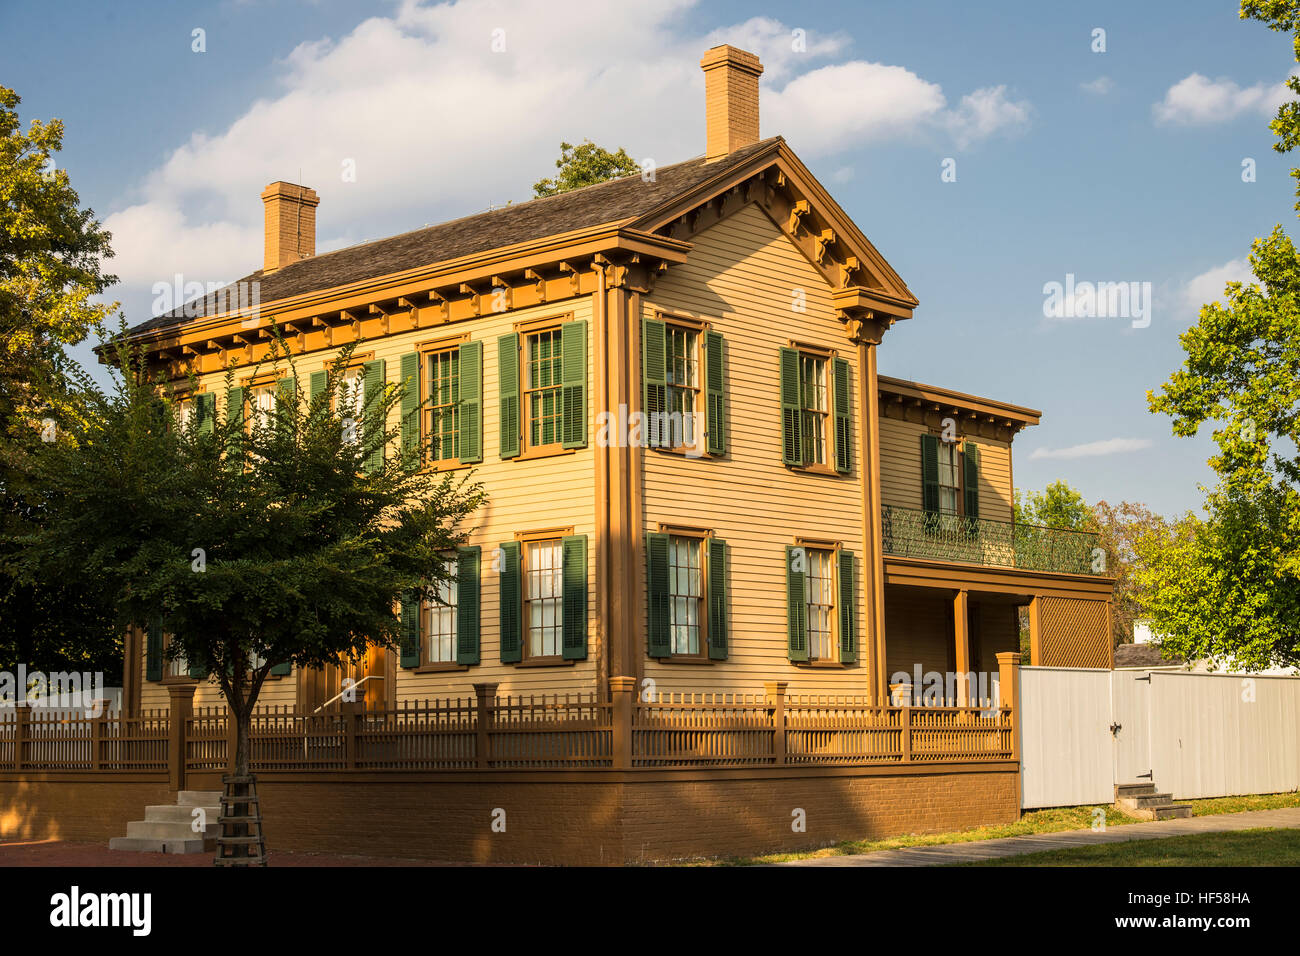 Abraham Lincoln home in Springfield, Illinois. - Stock Image